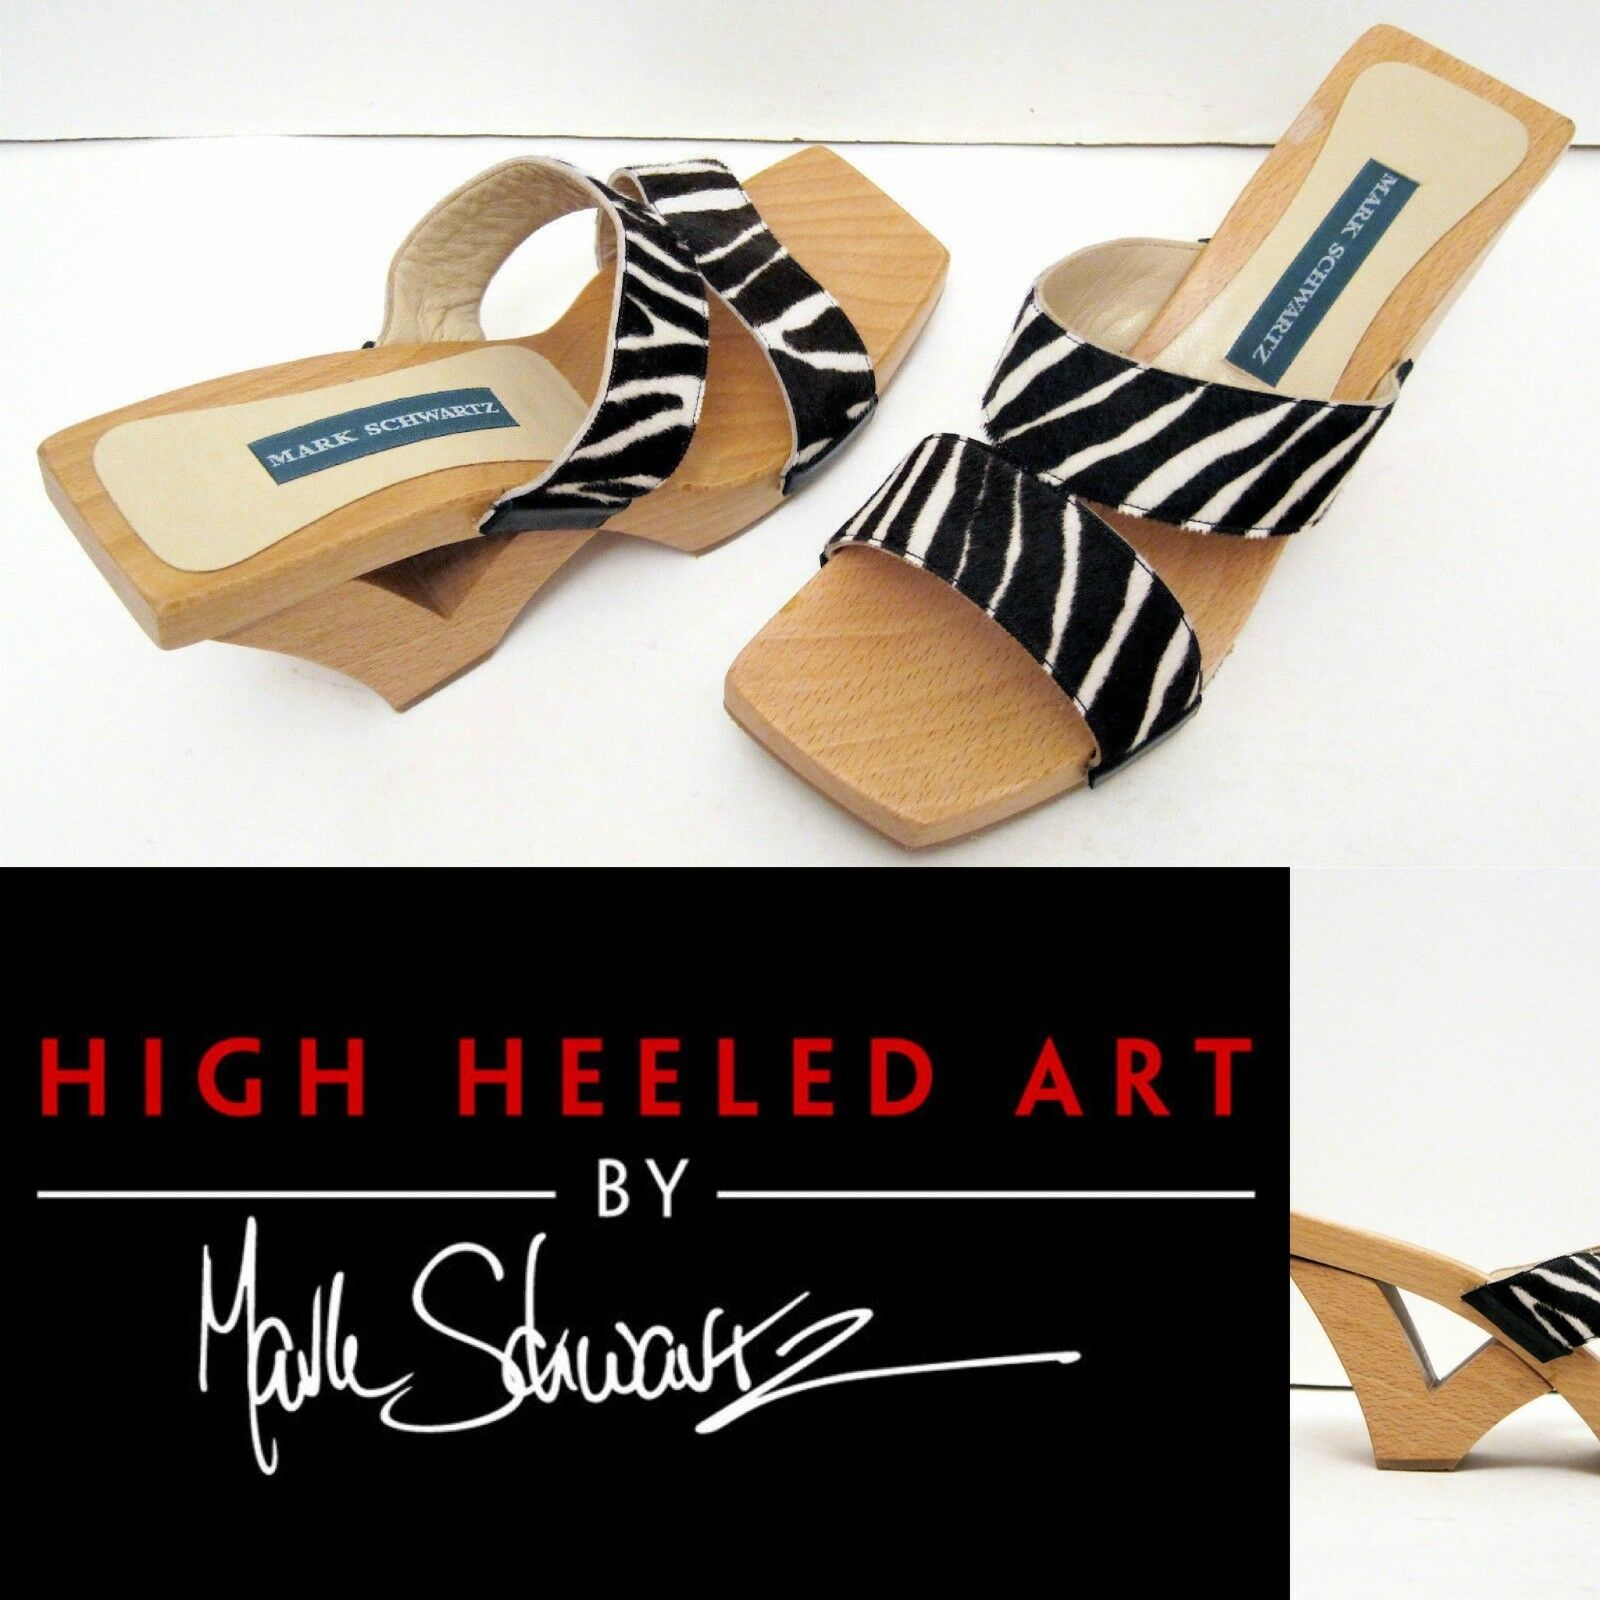 wholesape economico Mark Schwartz donna donna donna Sz 7 Sandal Animal Zebra Pony Wood Platform HIGH HEELED ART  nessun minimo